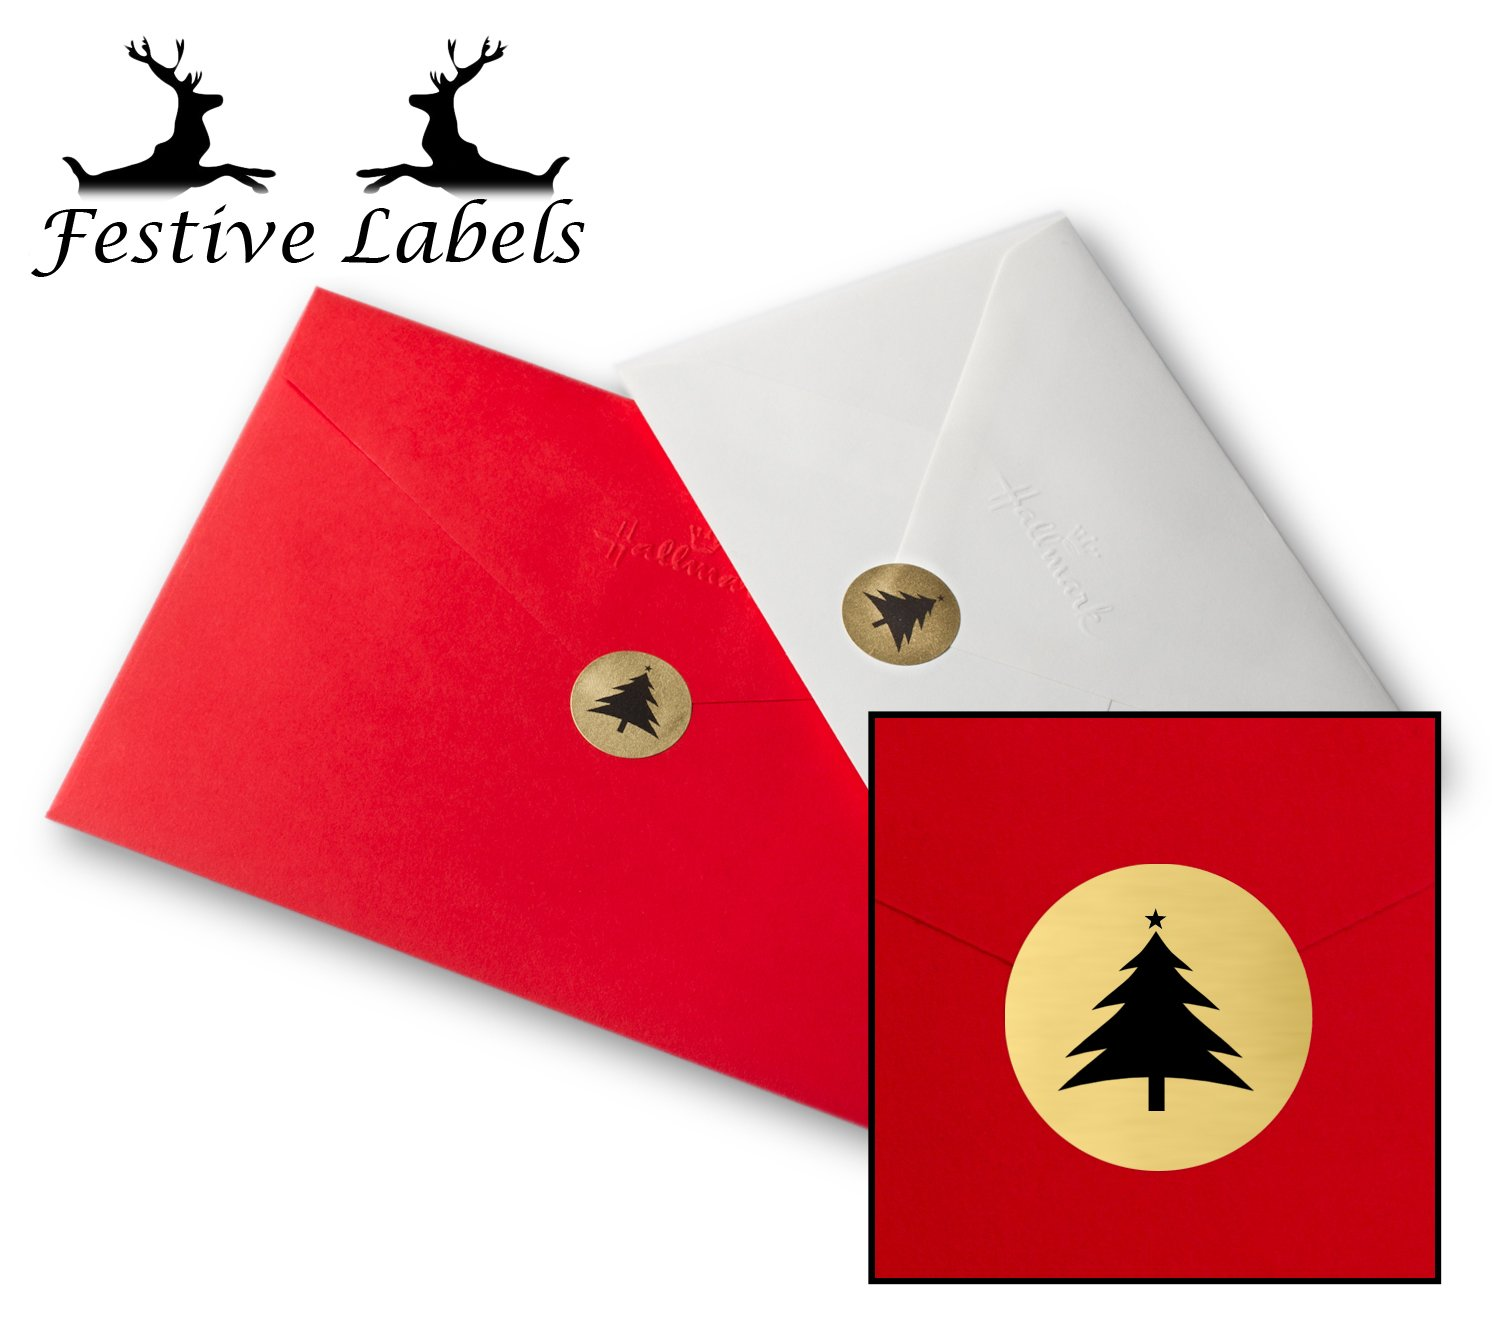 """140x Round Metallic Gold Card Envelope Seals, Festive Labels """"Christmas Tree"""" 25mm Diameter Circular Permanent Self-Adhesive Golden Printed Stickers, UK FLESG1 For Xmas Greeting Cards/Bags/Gift Wrapping Presents"""